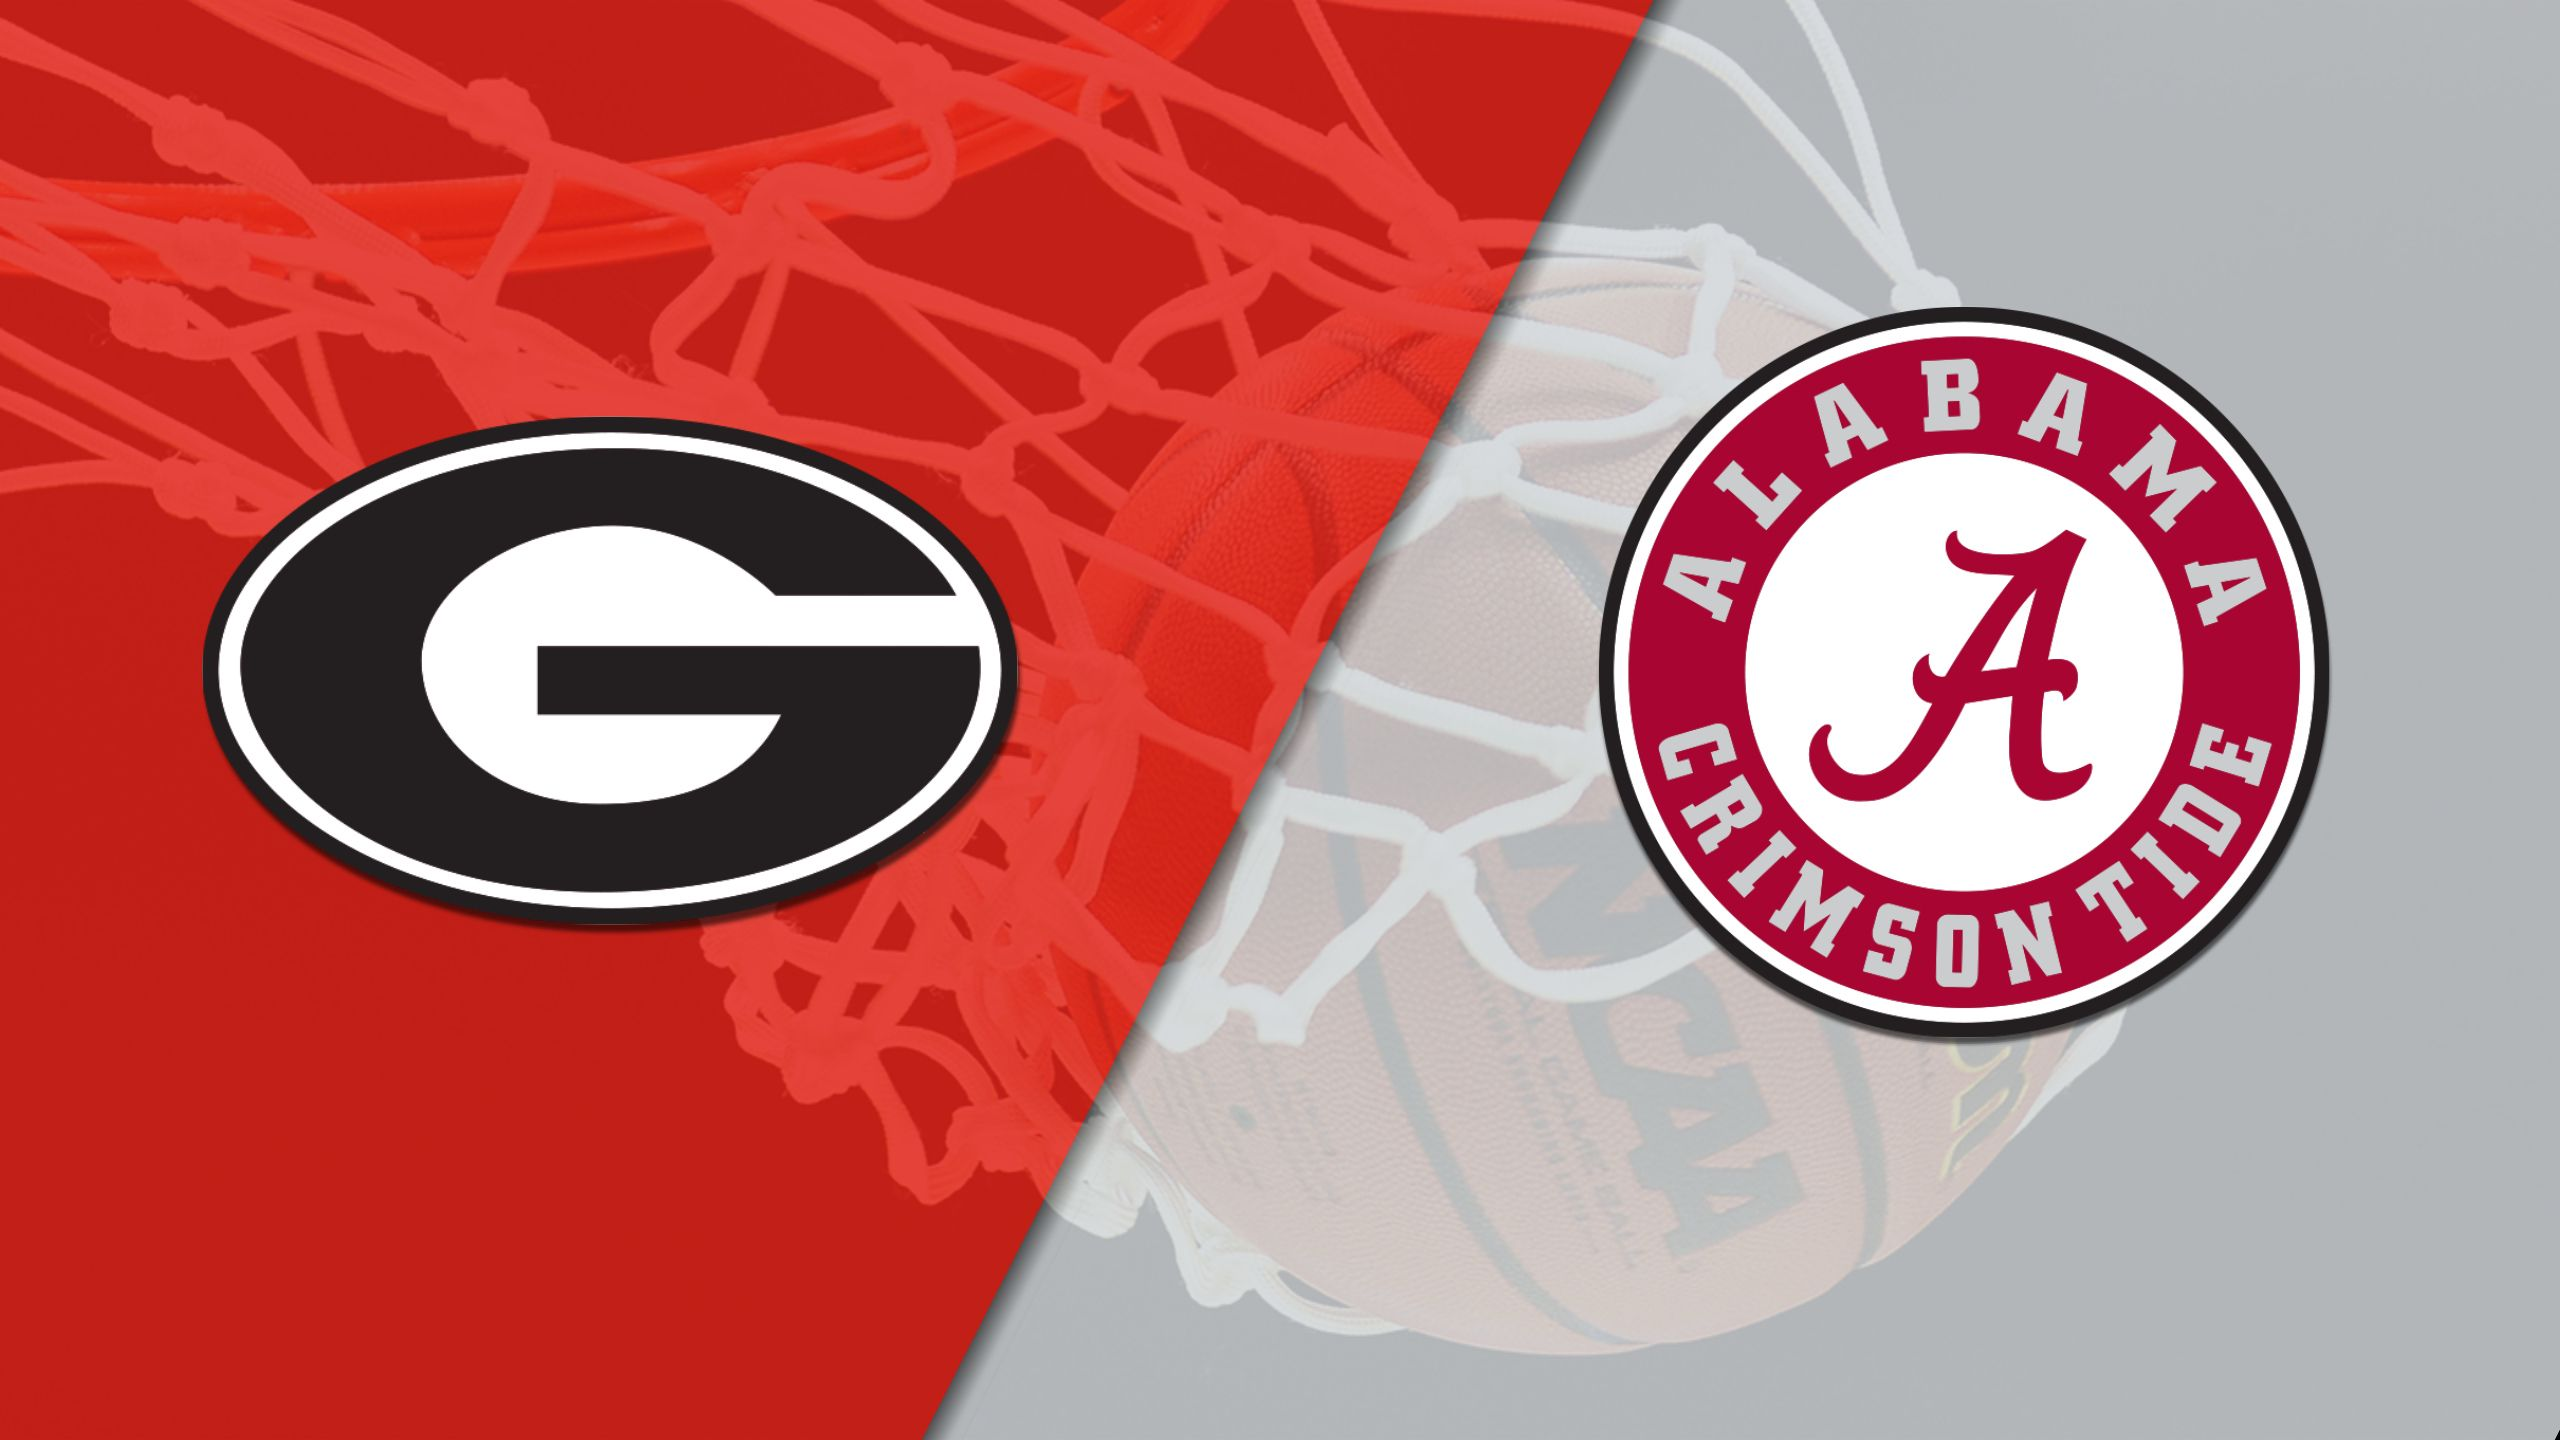 #19 Georgia vs. Alabama (W Basketball)